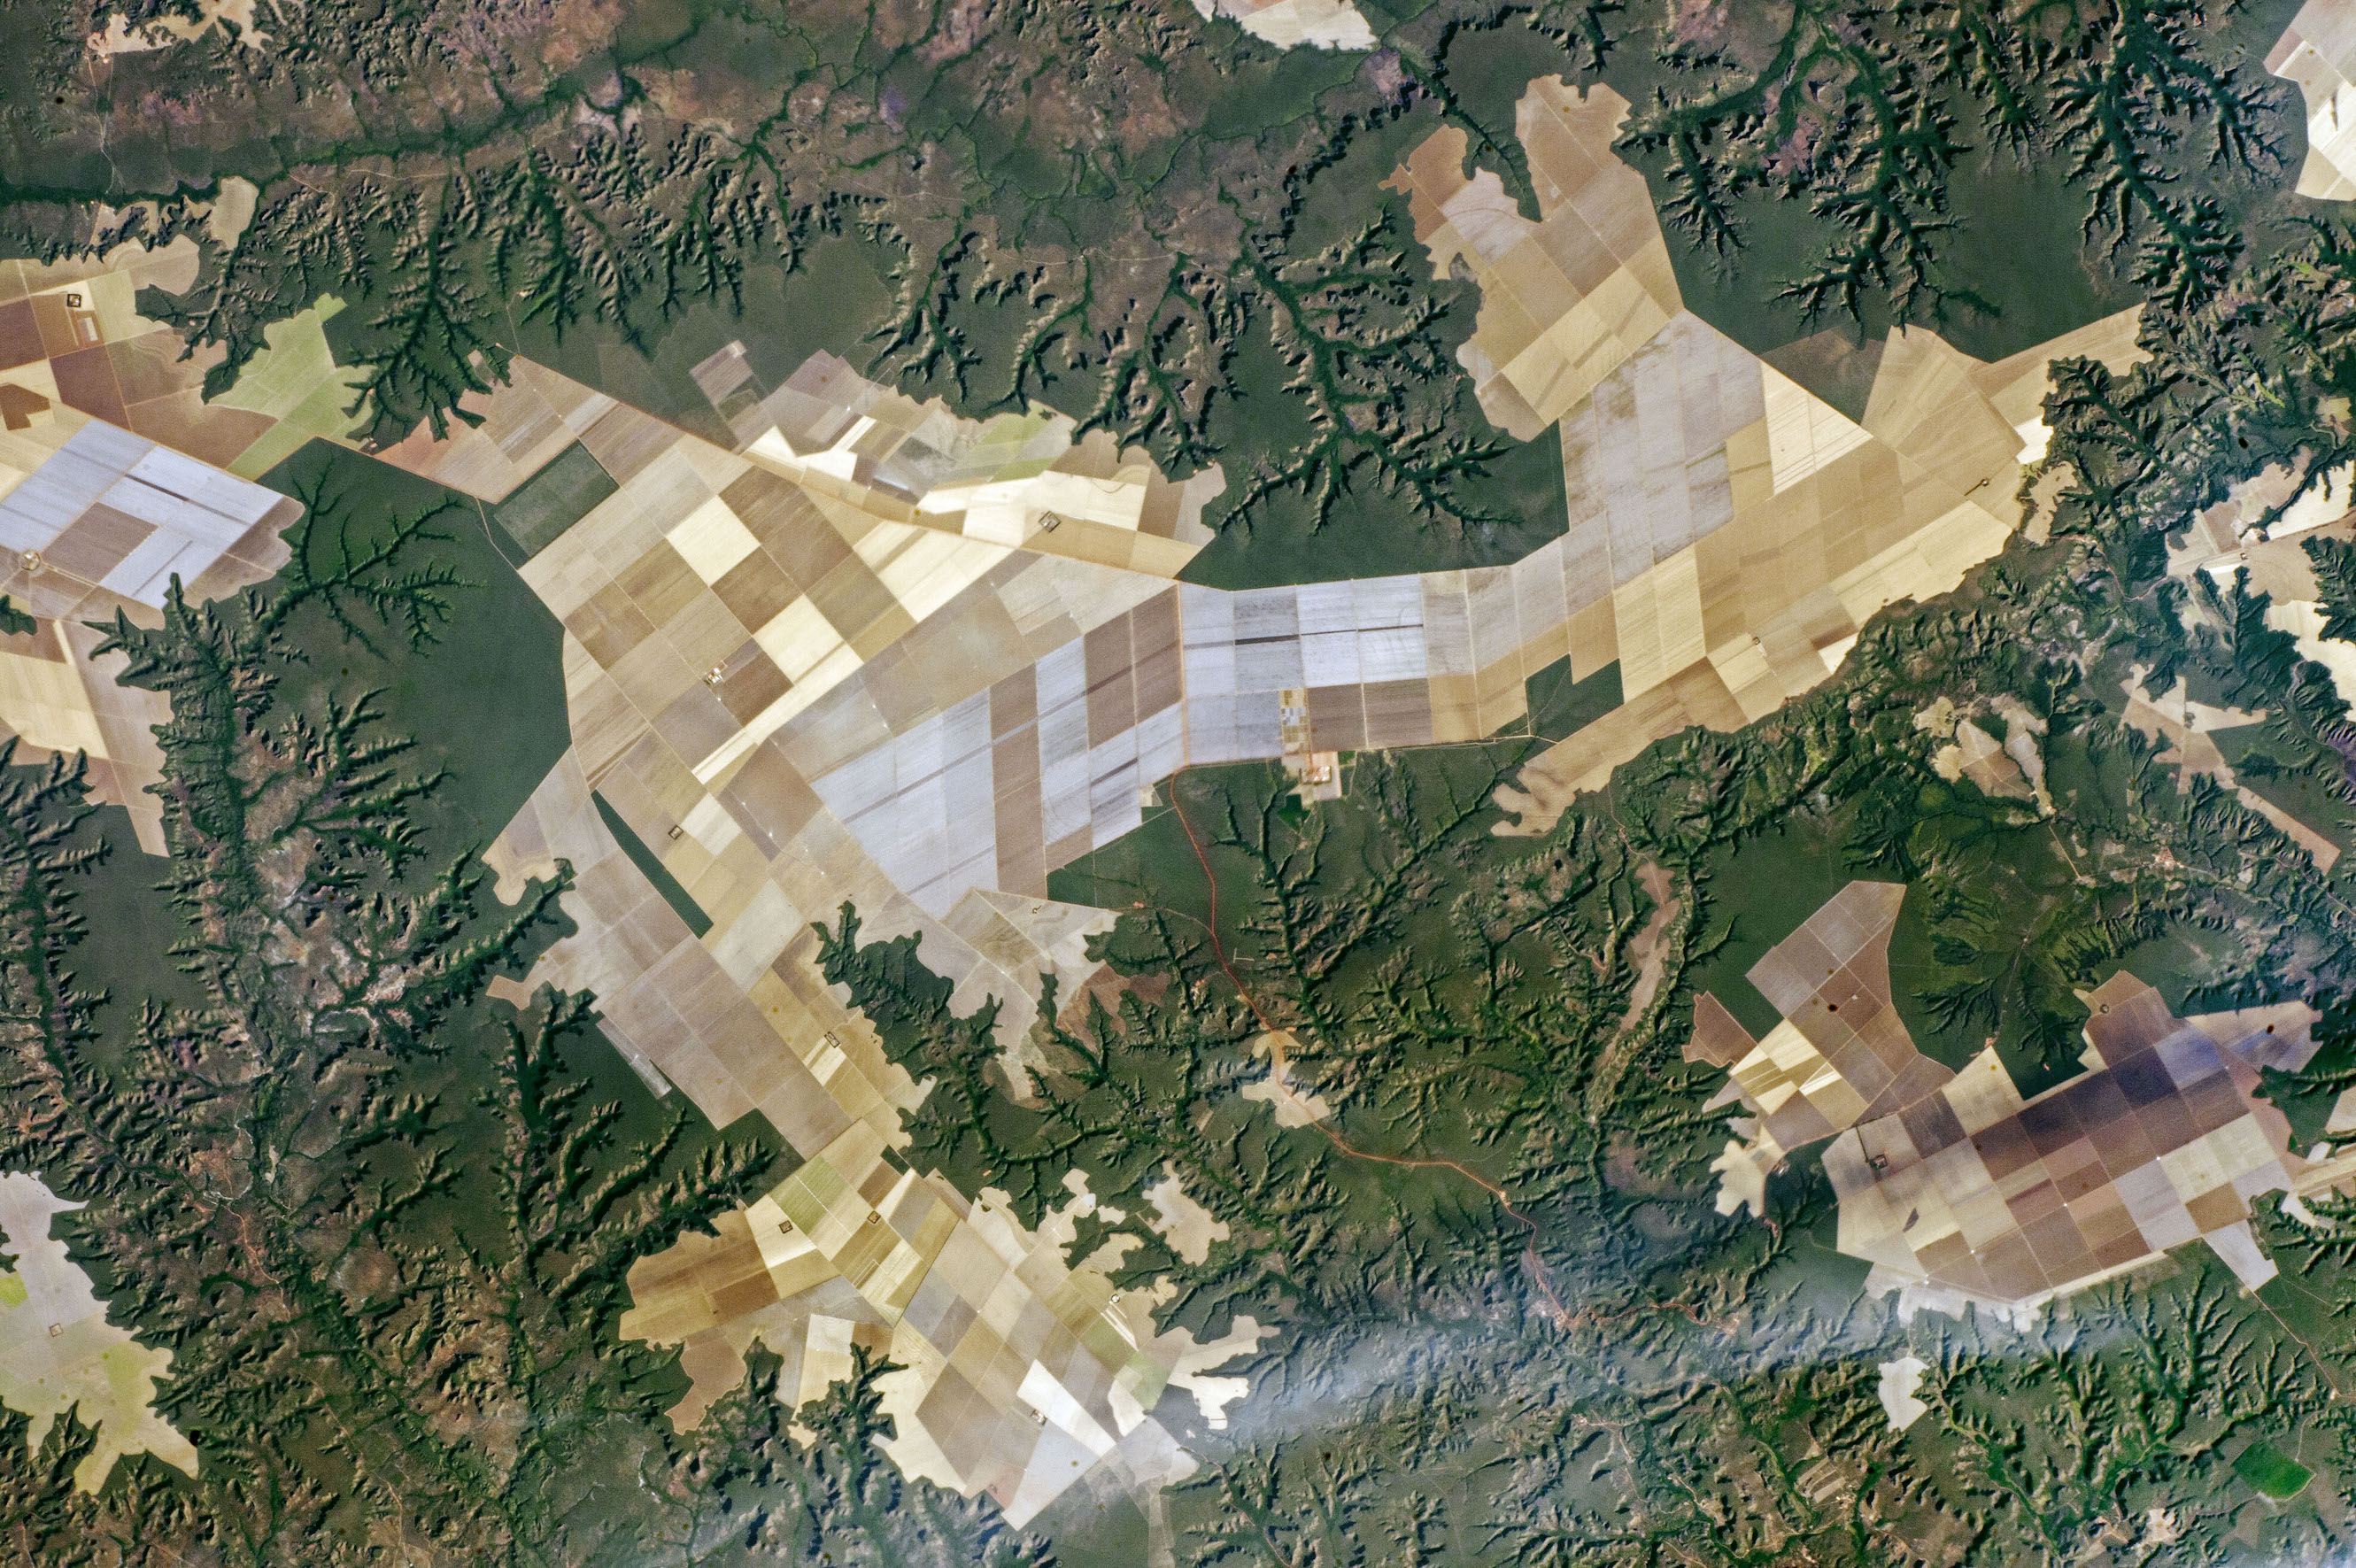 Today's Image of the Day comes courtesy of the NASA Earth Observatory and features a look at sprawling agricultural fields in Brazil.